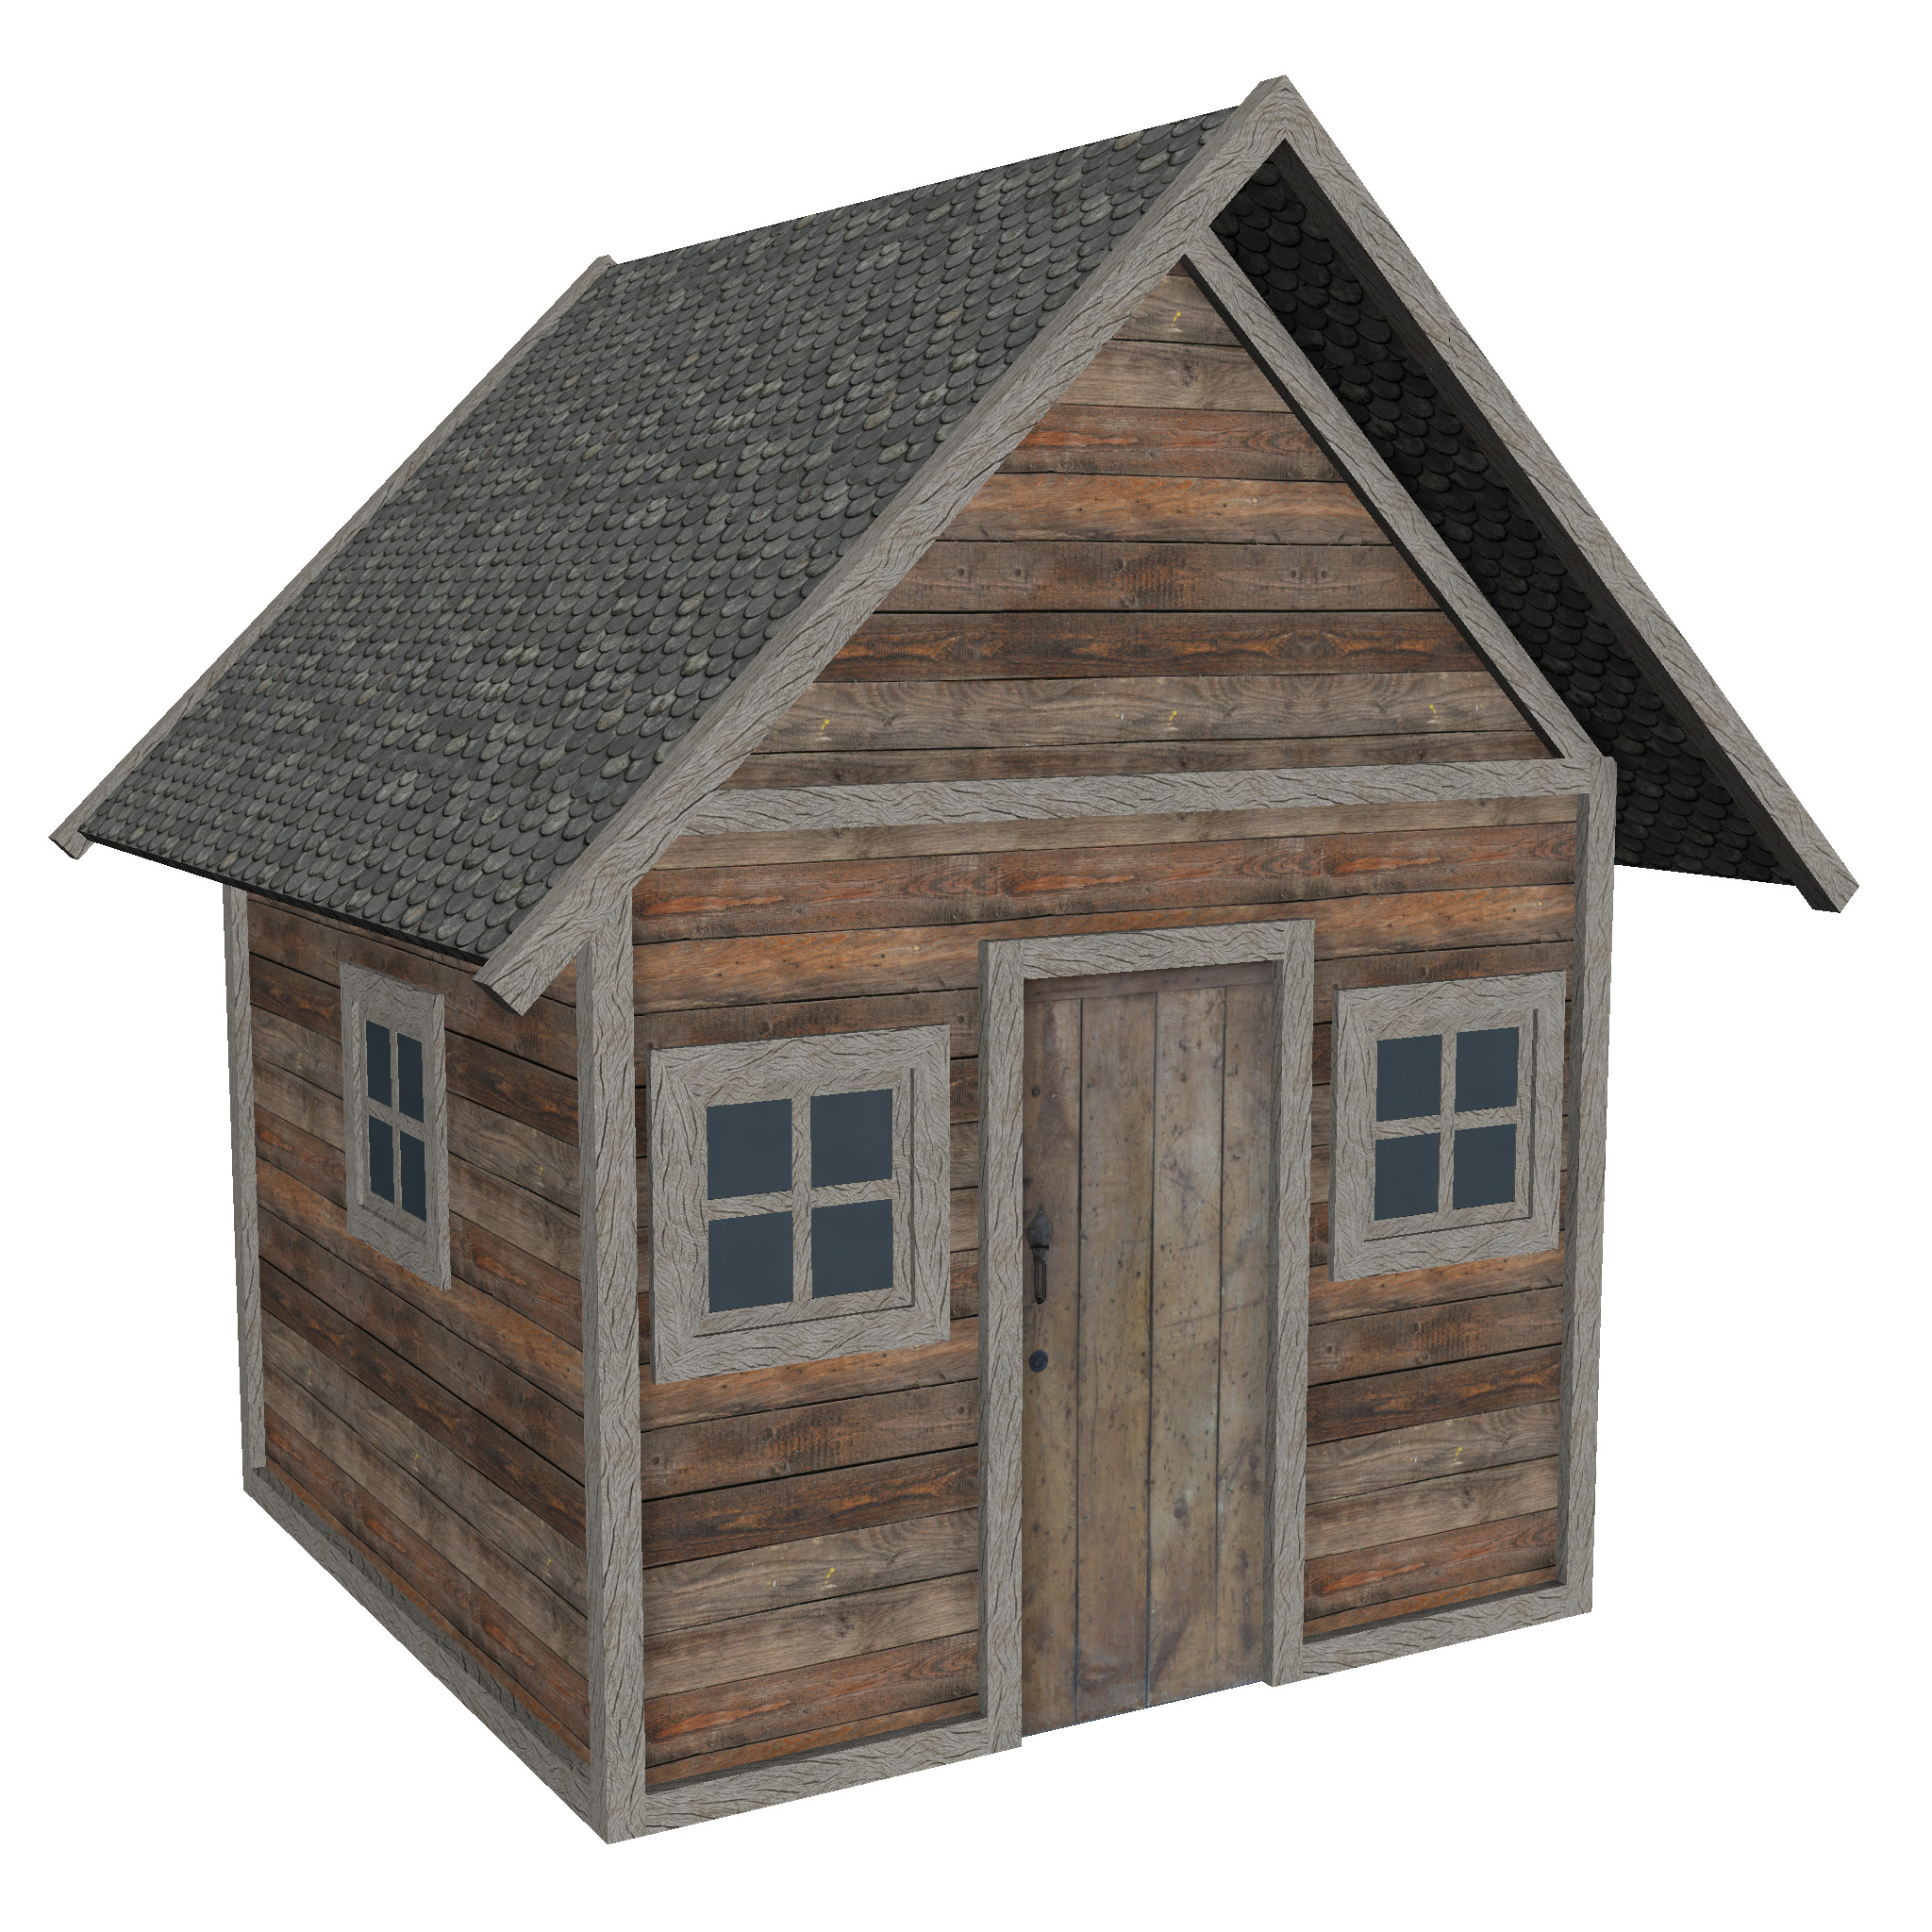 modular wood house set 3d model fbx ma mb 271459